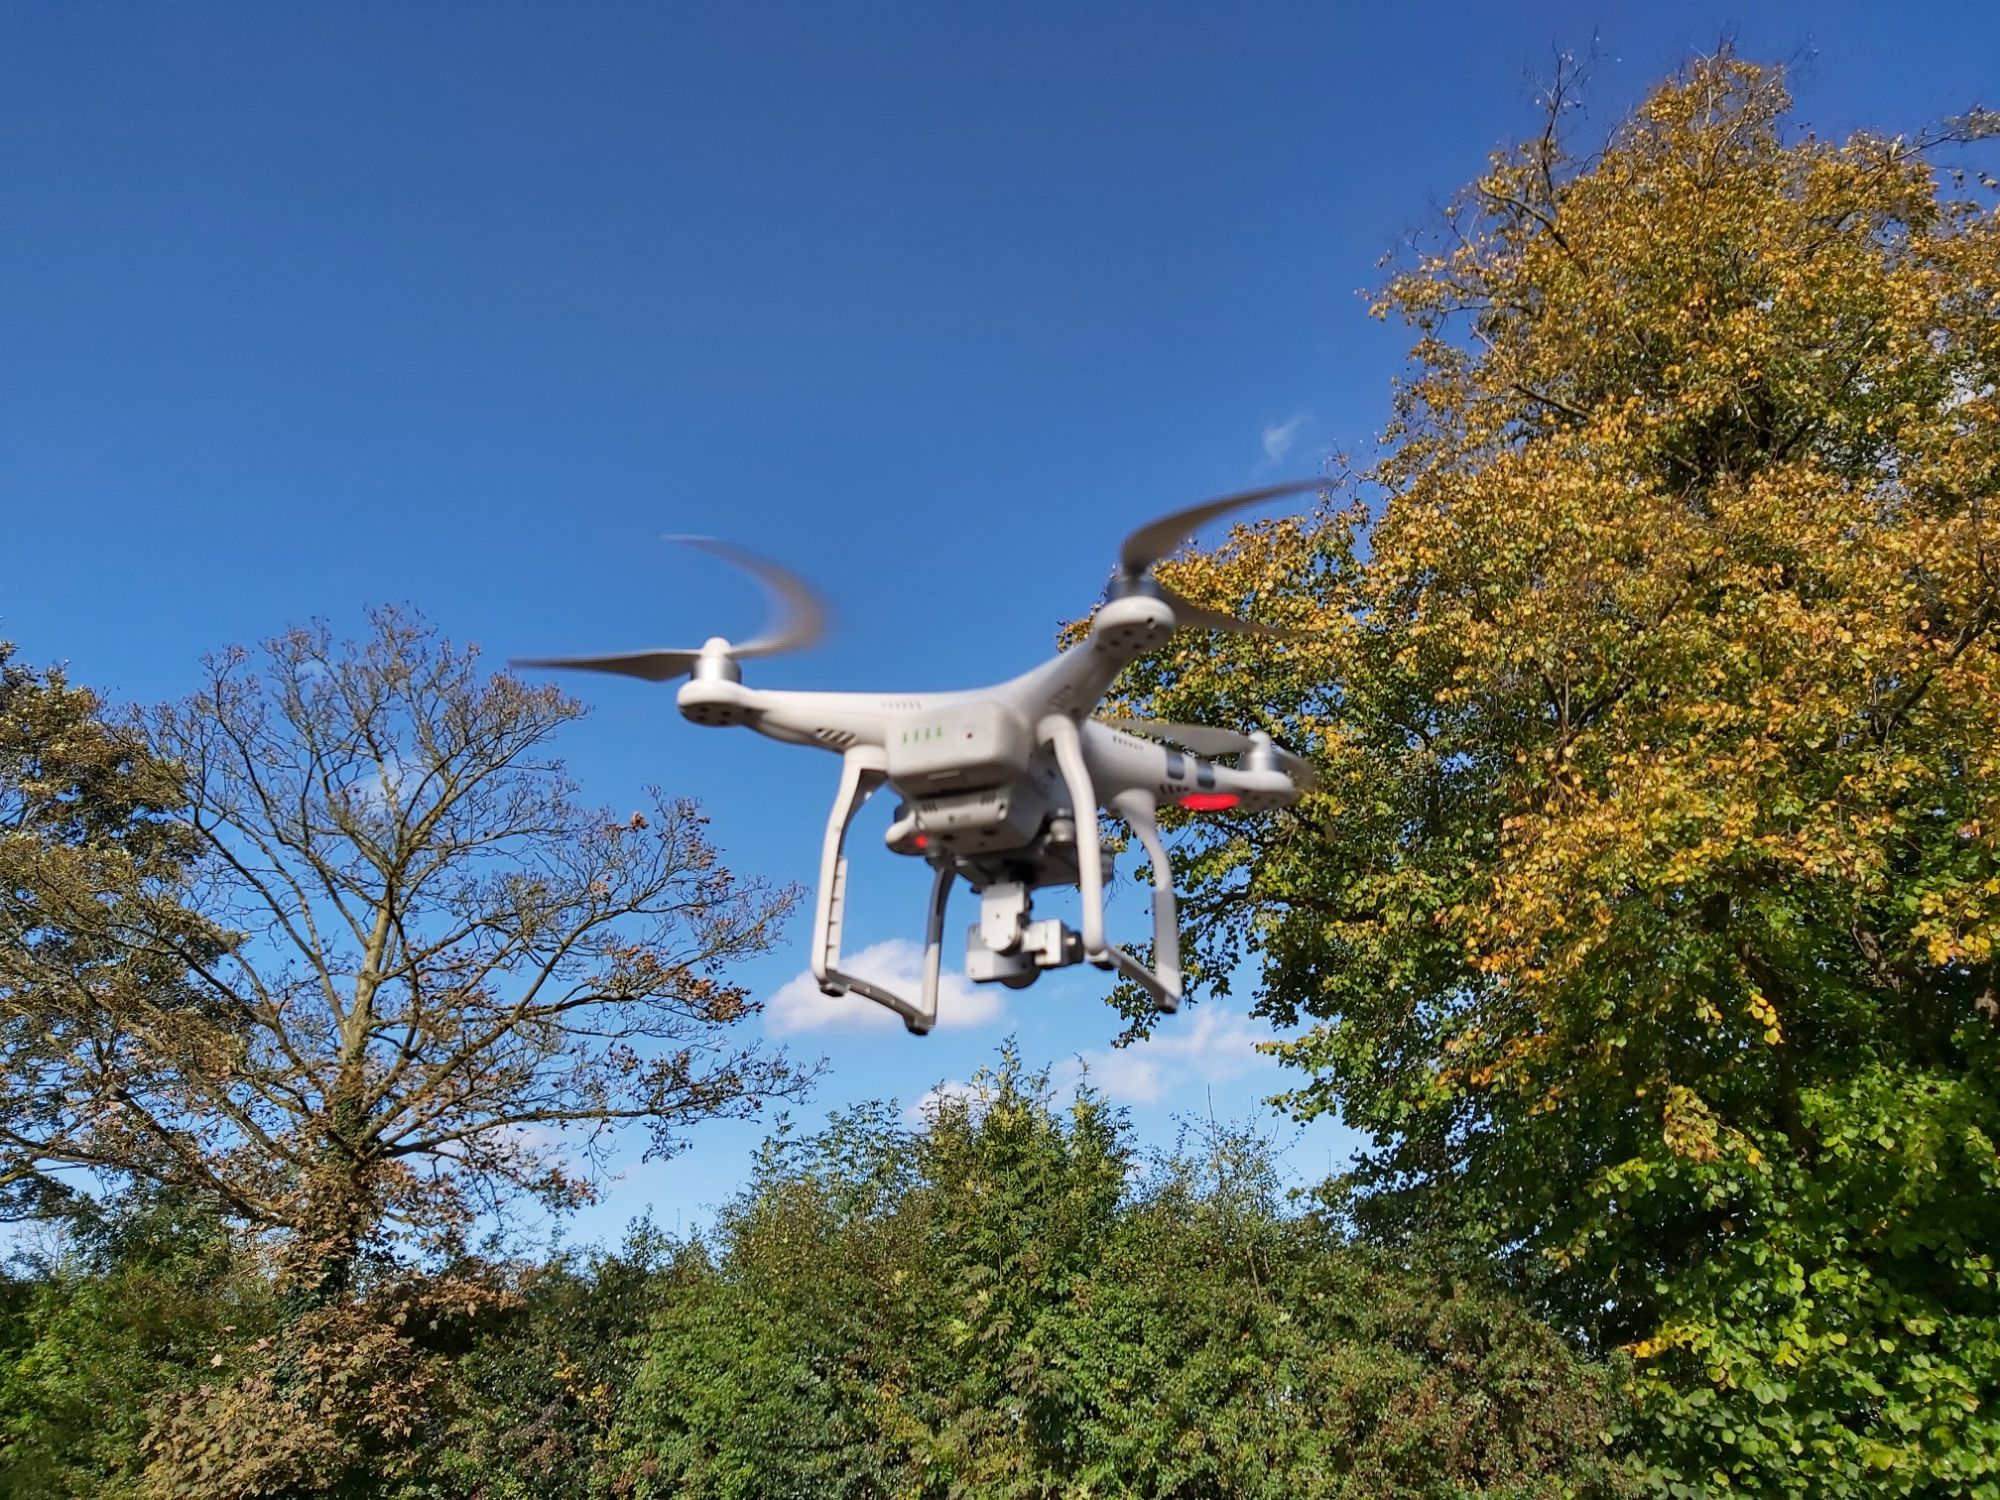 Drone to take aerial photography to support planning applications